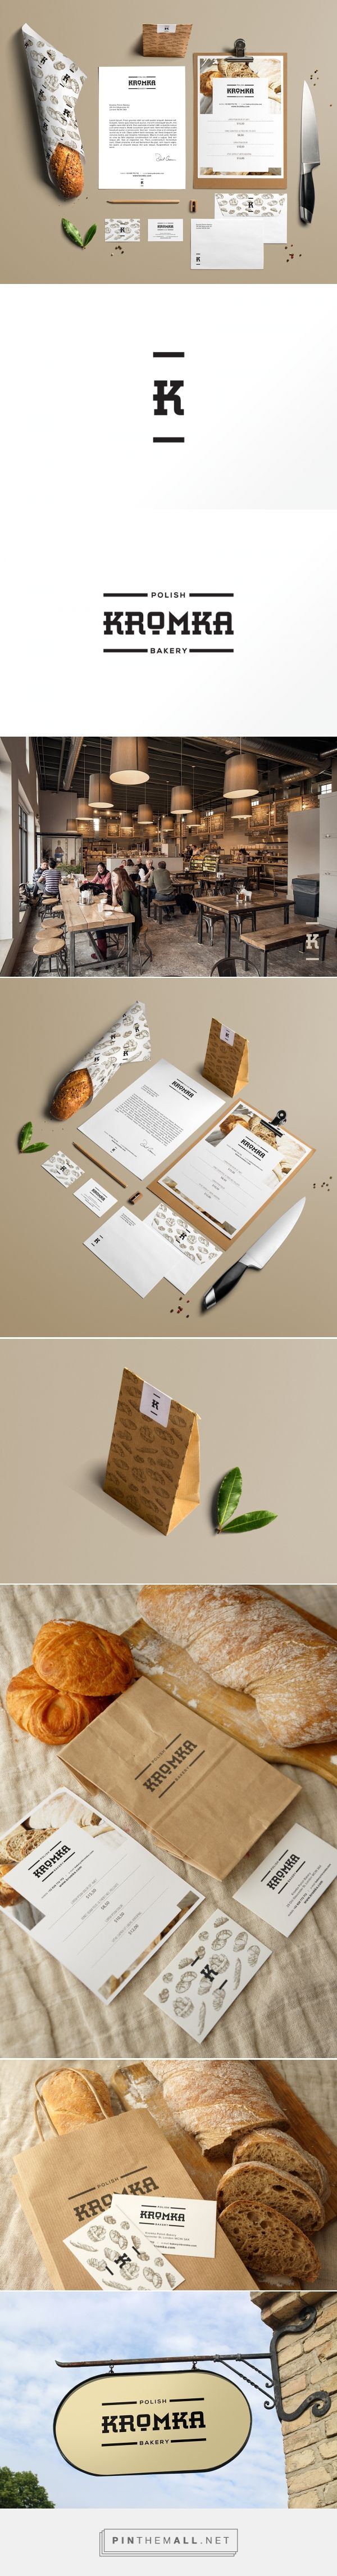 Kromka Polish Bakery packaging branding on Behance by Sebastian Bednark curated by Packaging Diva PD. Let's eat : )